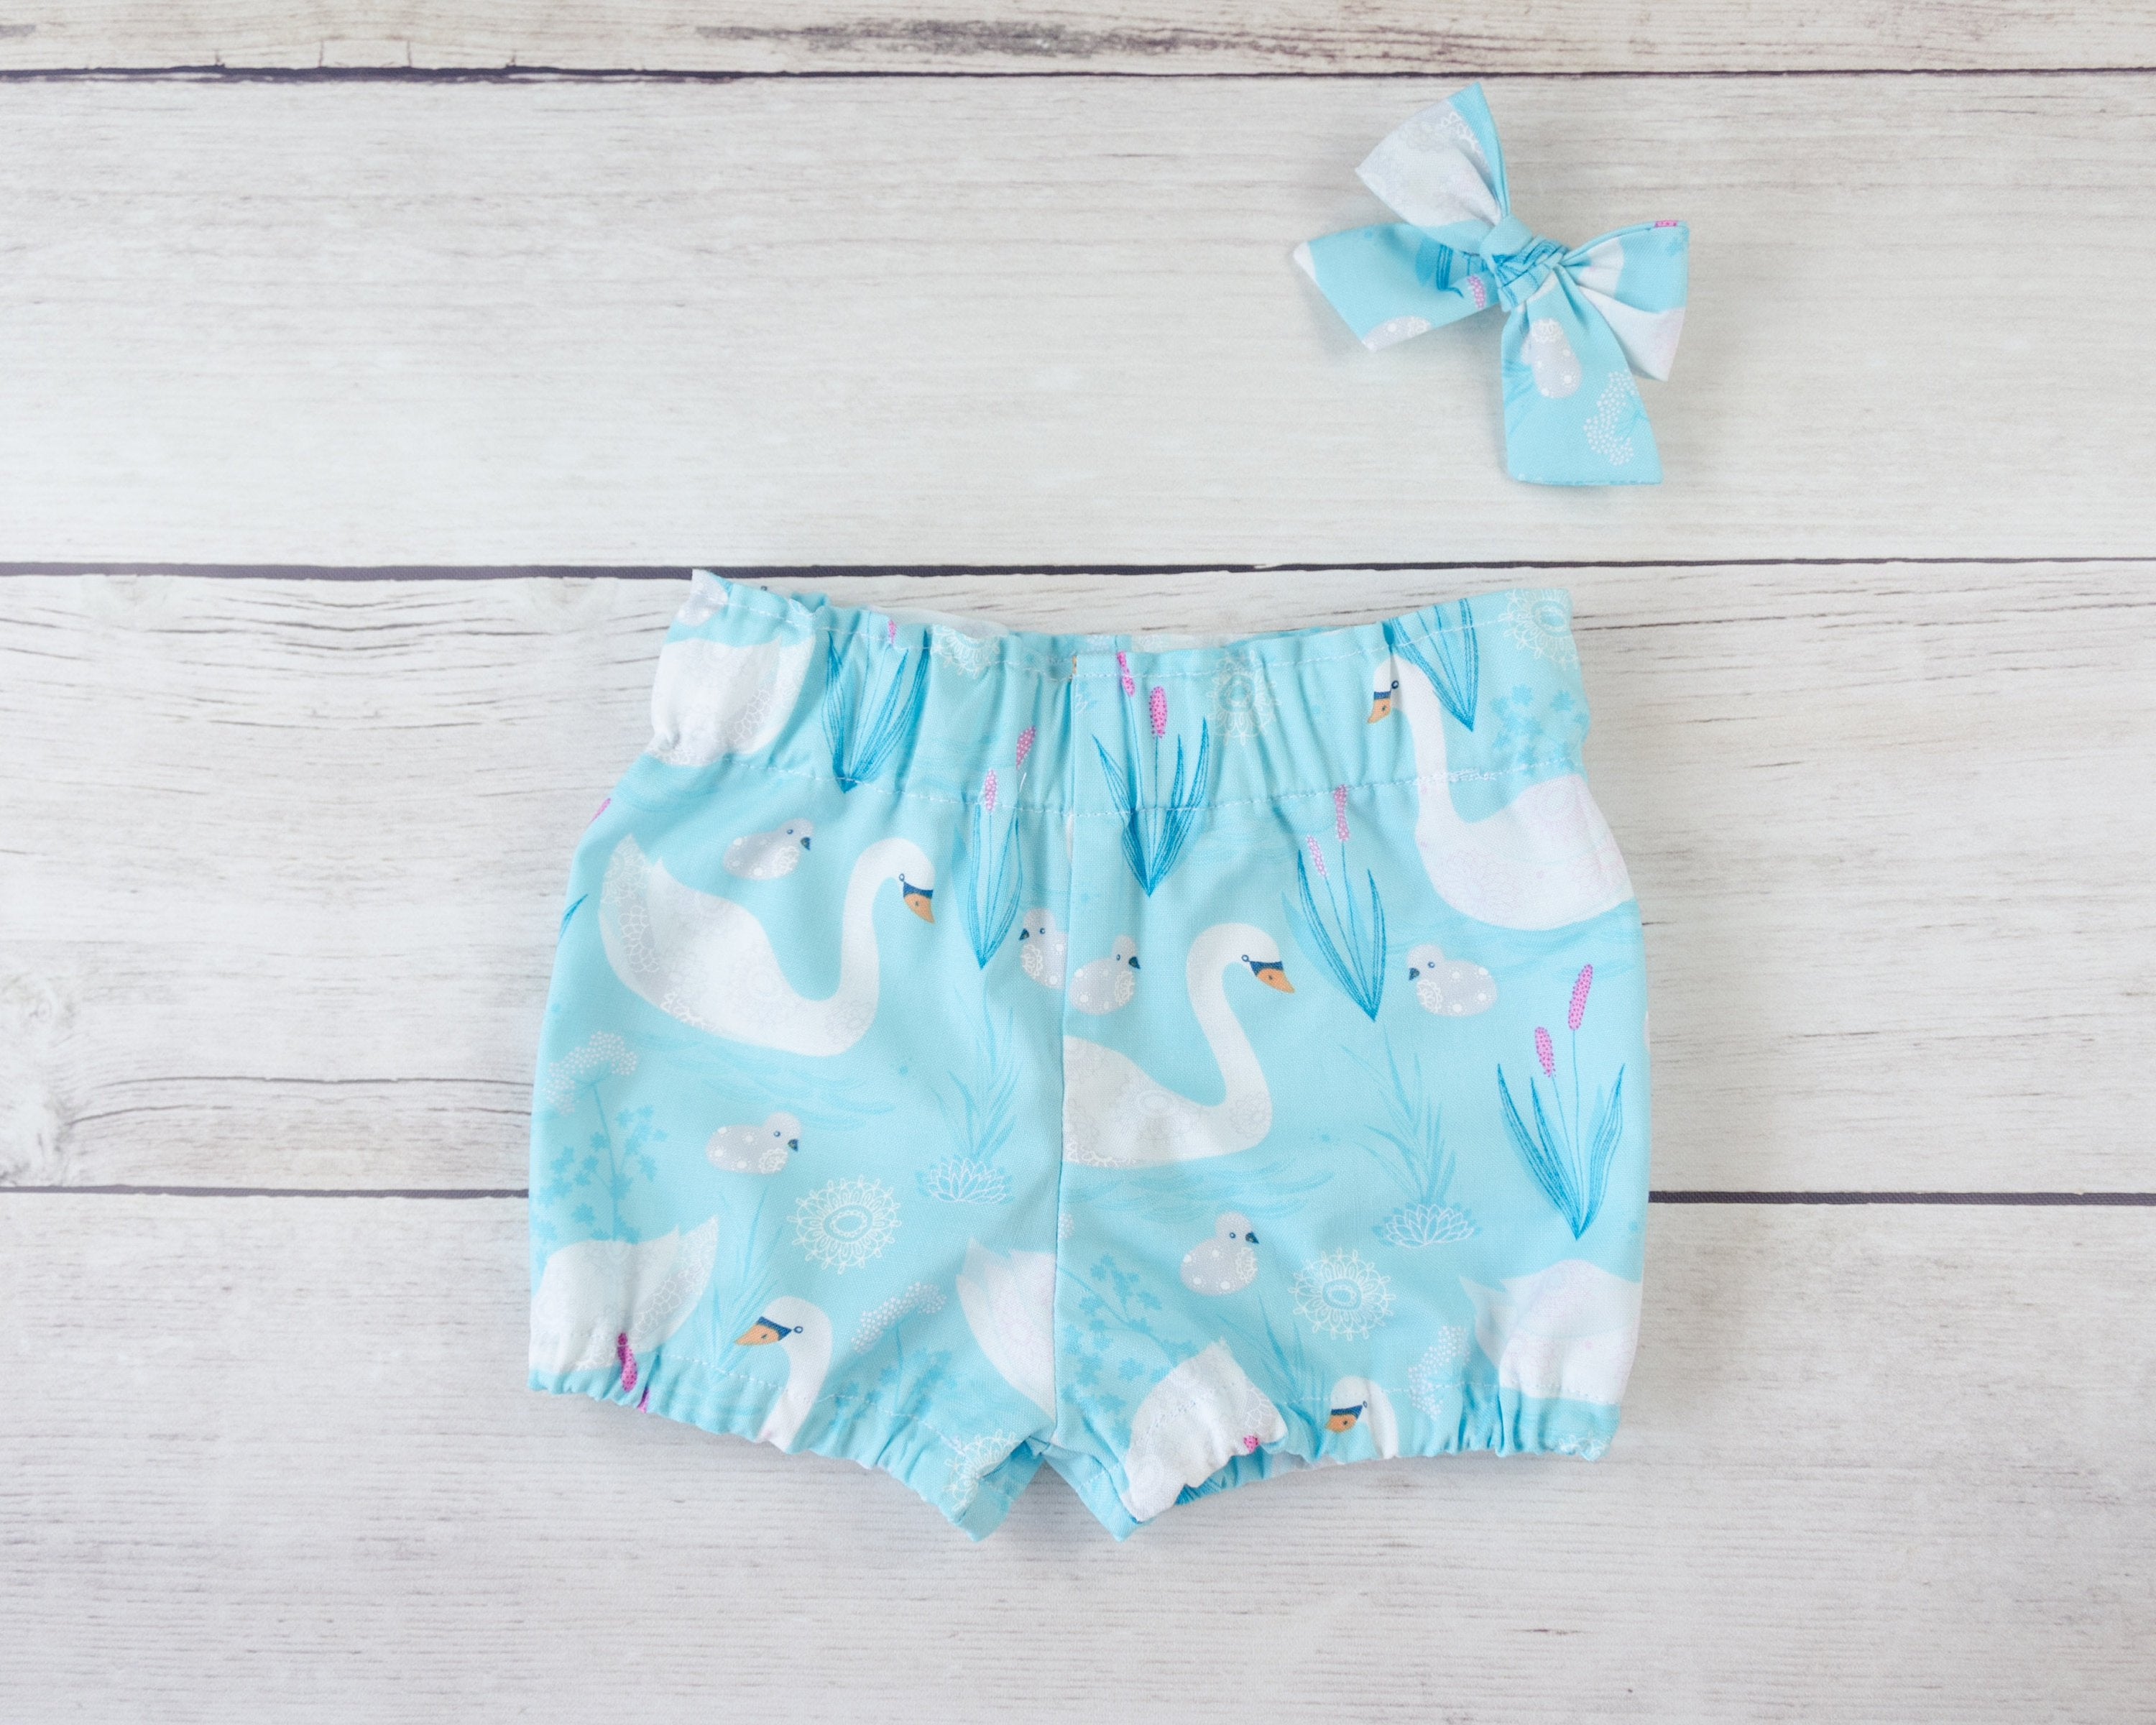 Swan Baby Toddler Bloomers, Skirt or Pants